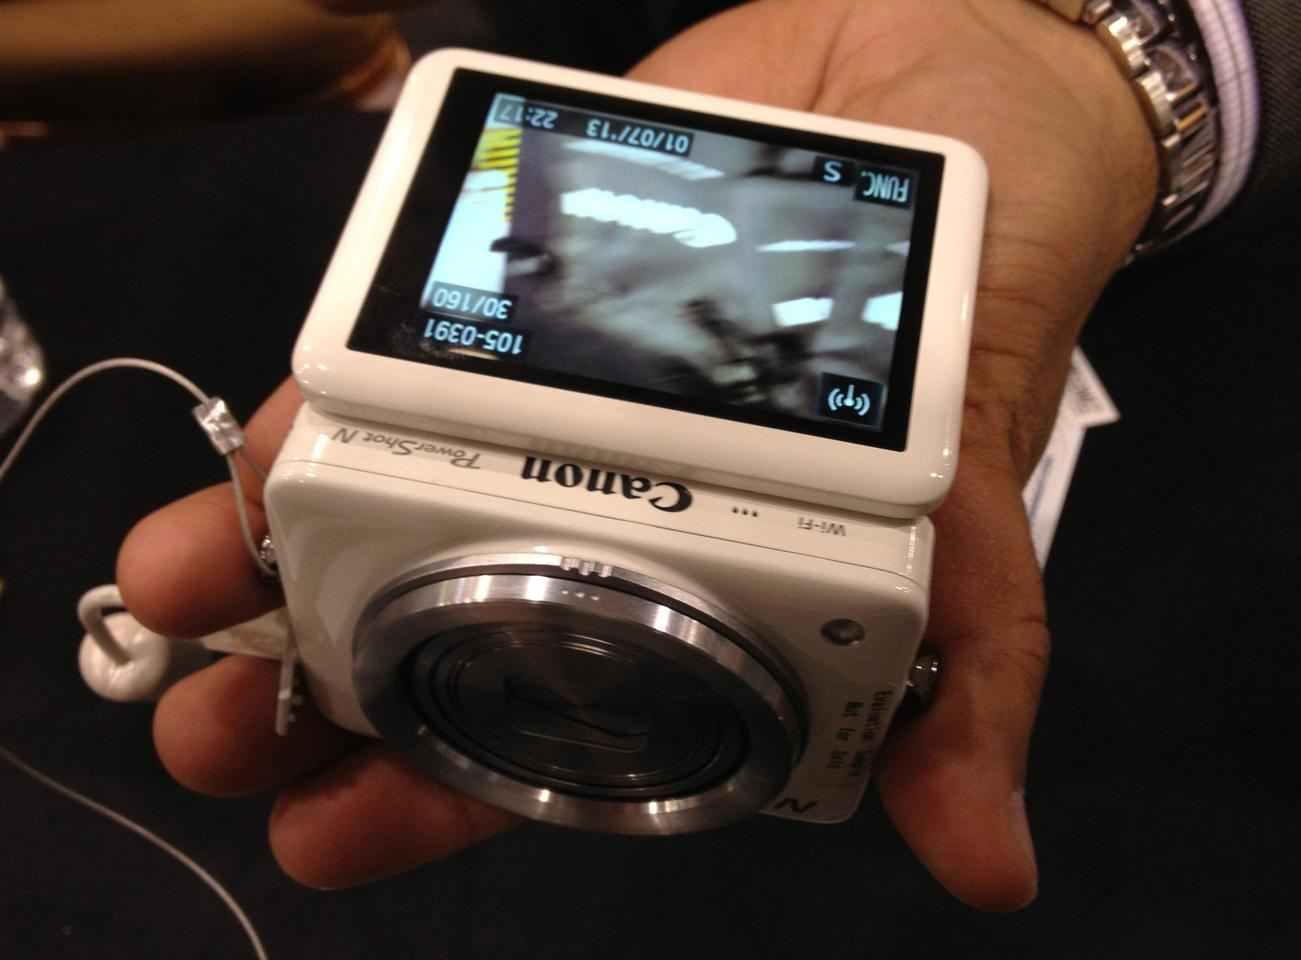 The Canon Powershot N at CES 2013